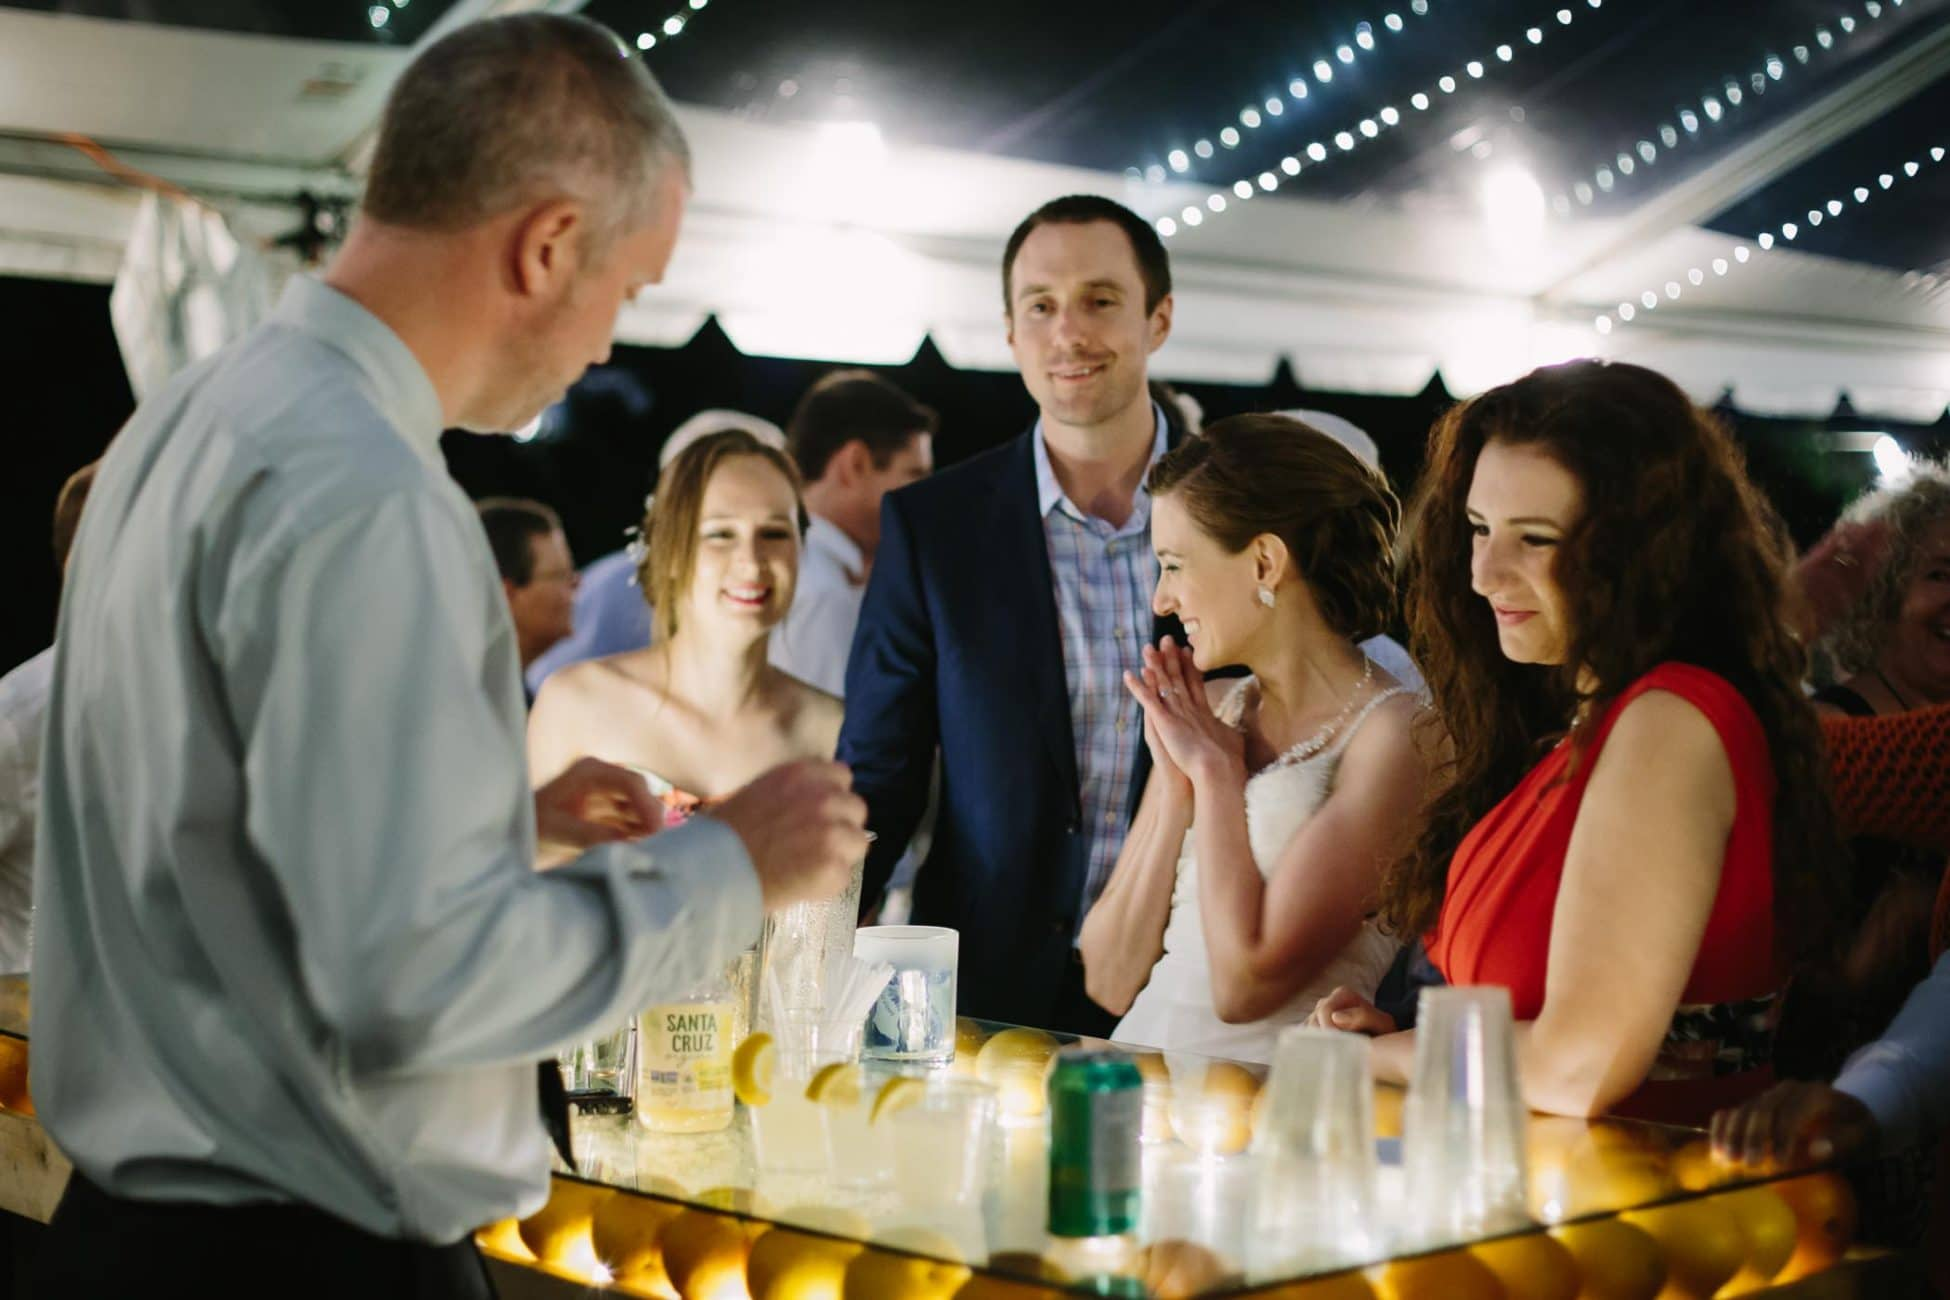 The bride smiles with hands brought together while ordering a beverage with her friends at a mobile bar whose glass surface is supported by dozens of lemons and oranges.